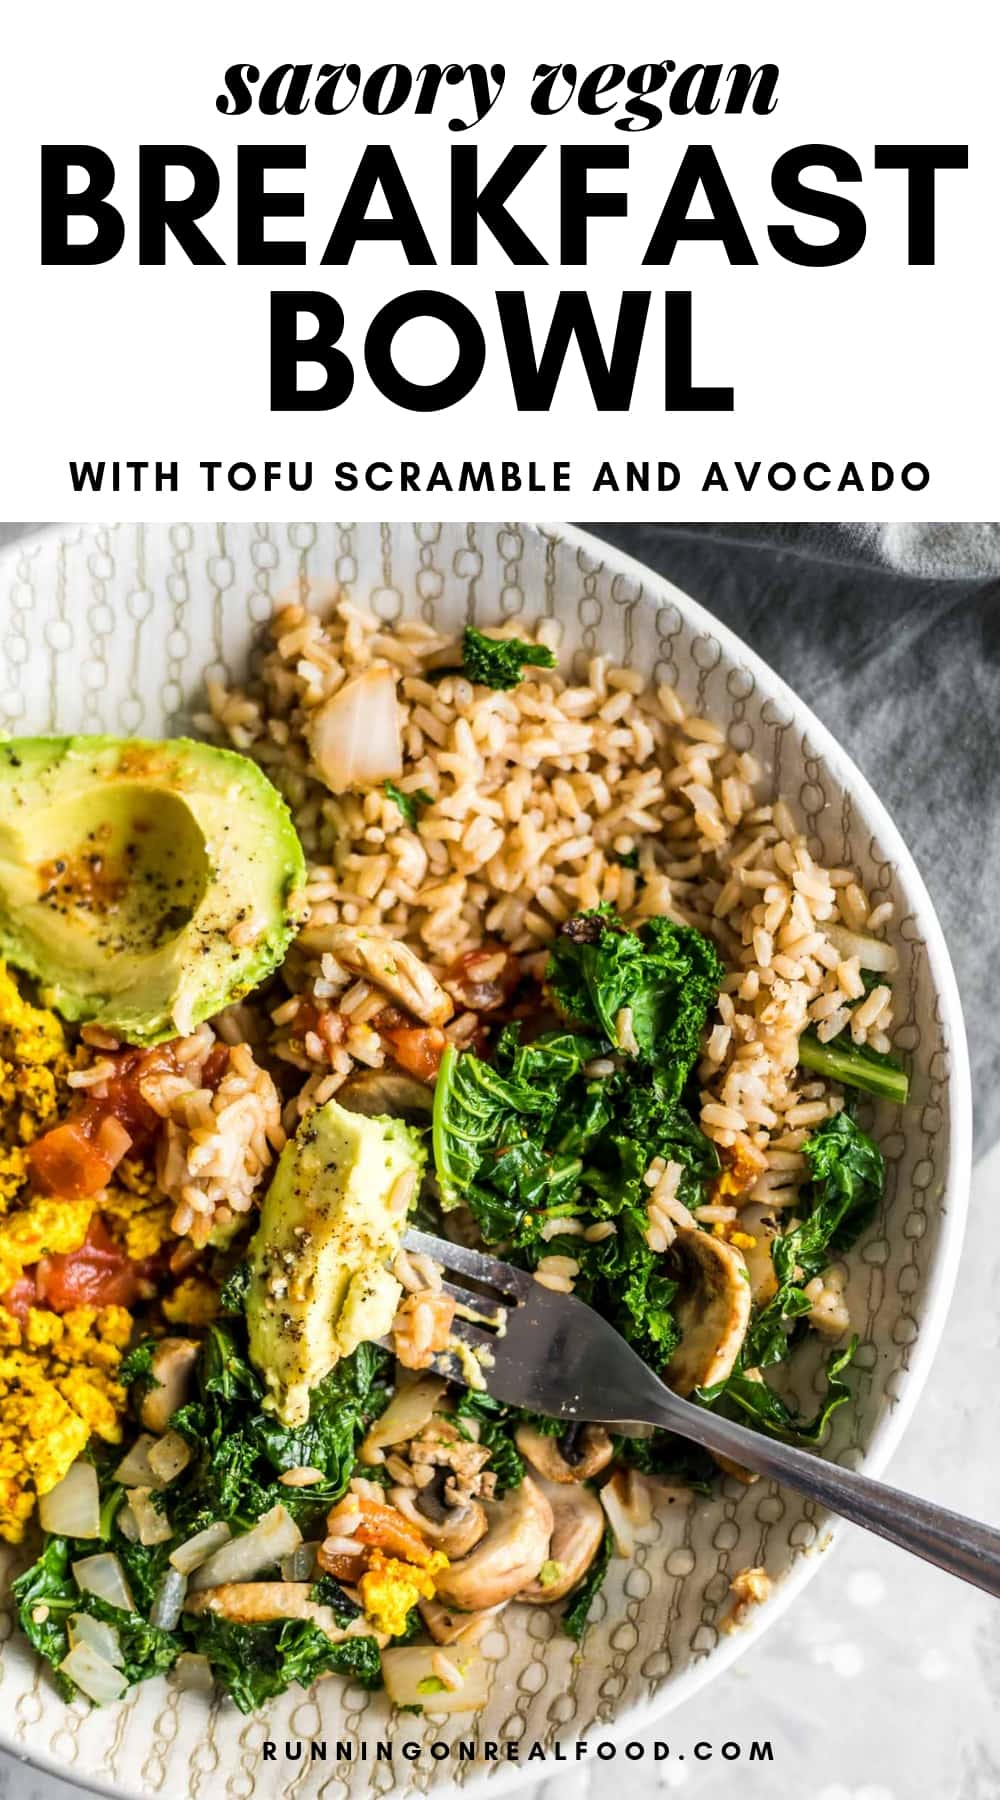 Savory Vegan Breakfast Bowl Recipe With Images Savory Vegan Breakfast Bowls Breakfast Bowls Recipe